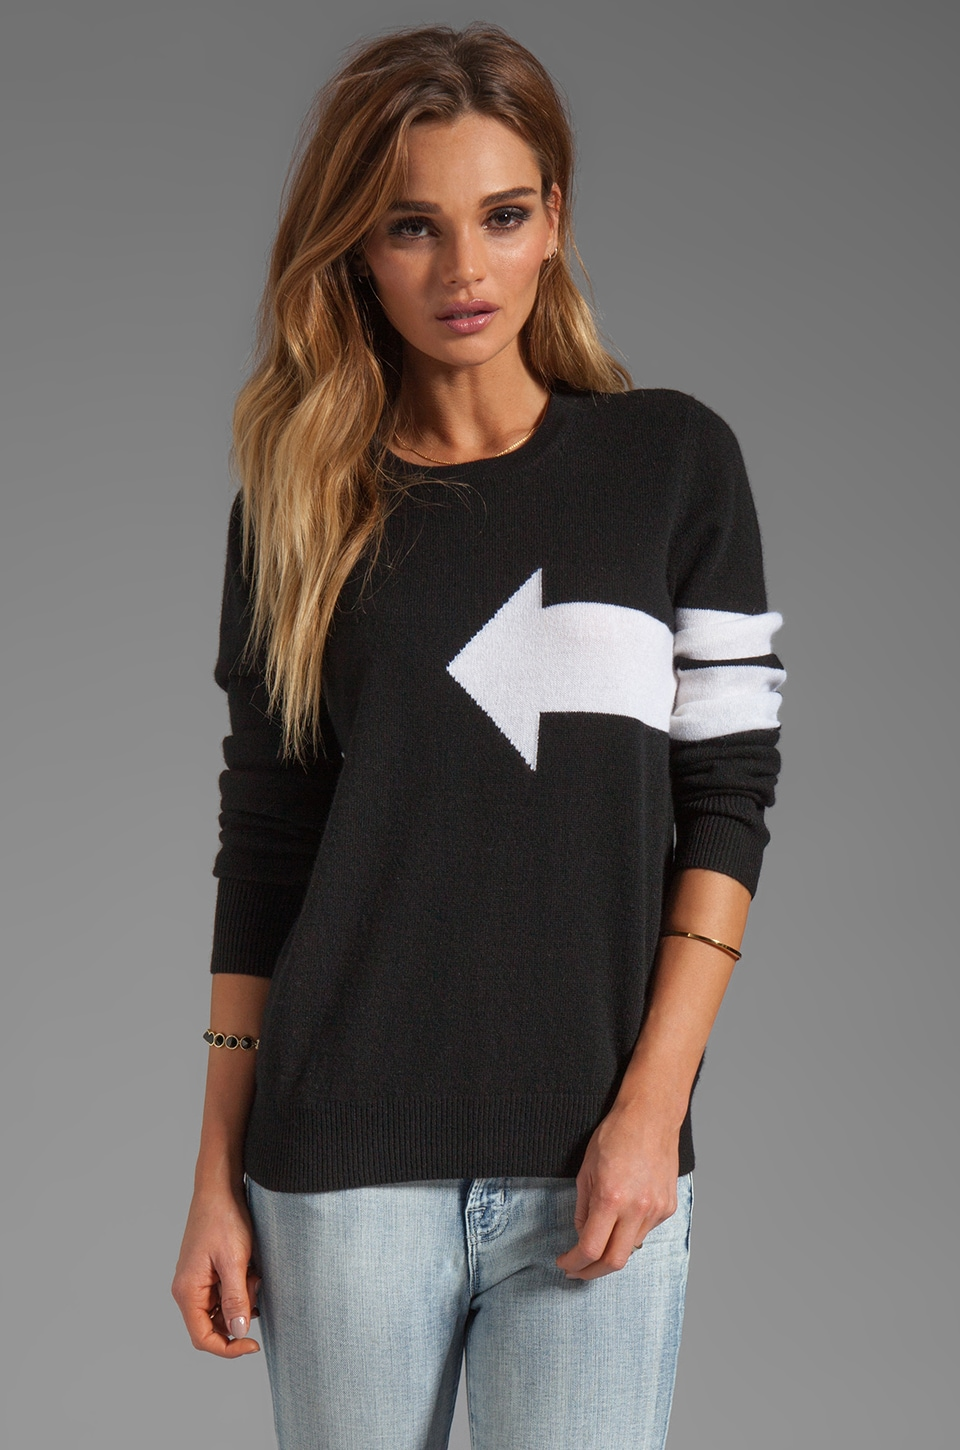 Equipment Shane Crew Neck Sweater in Black